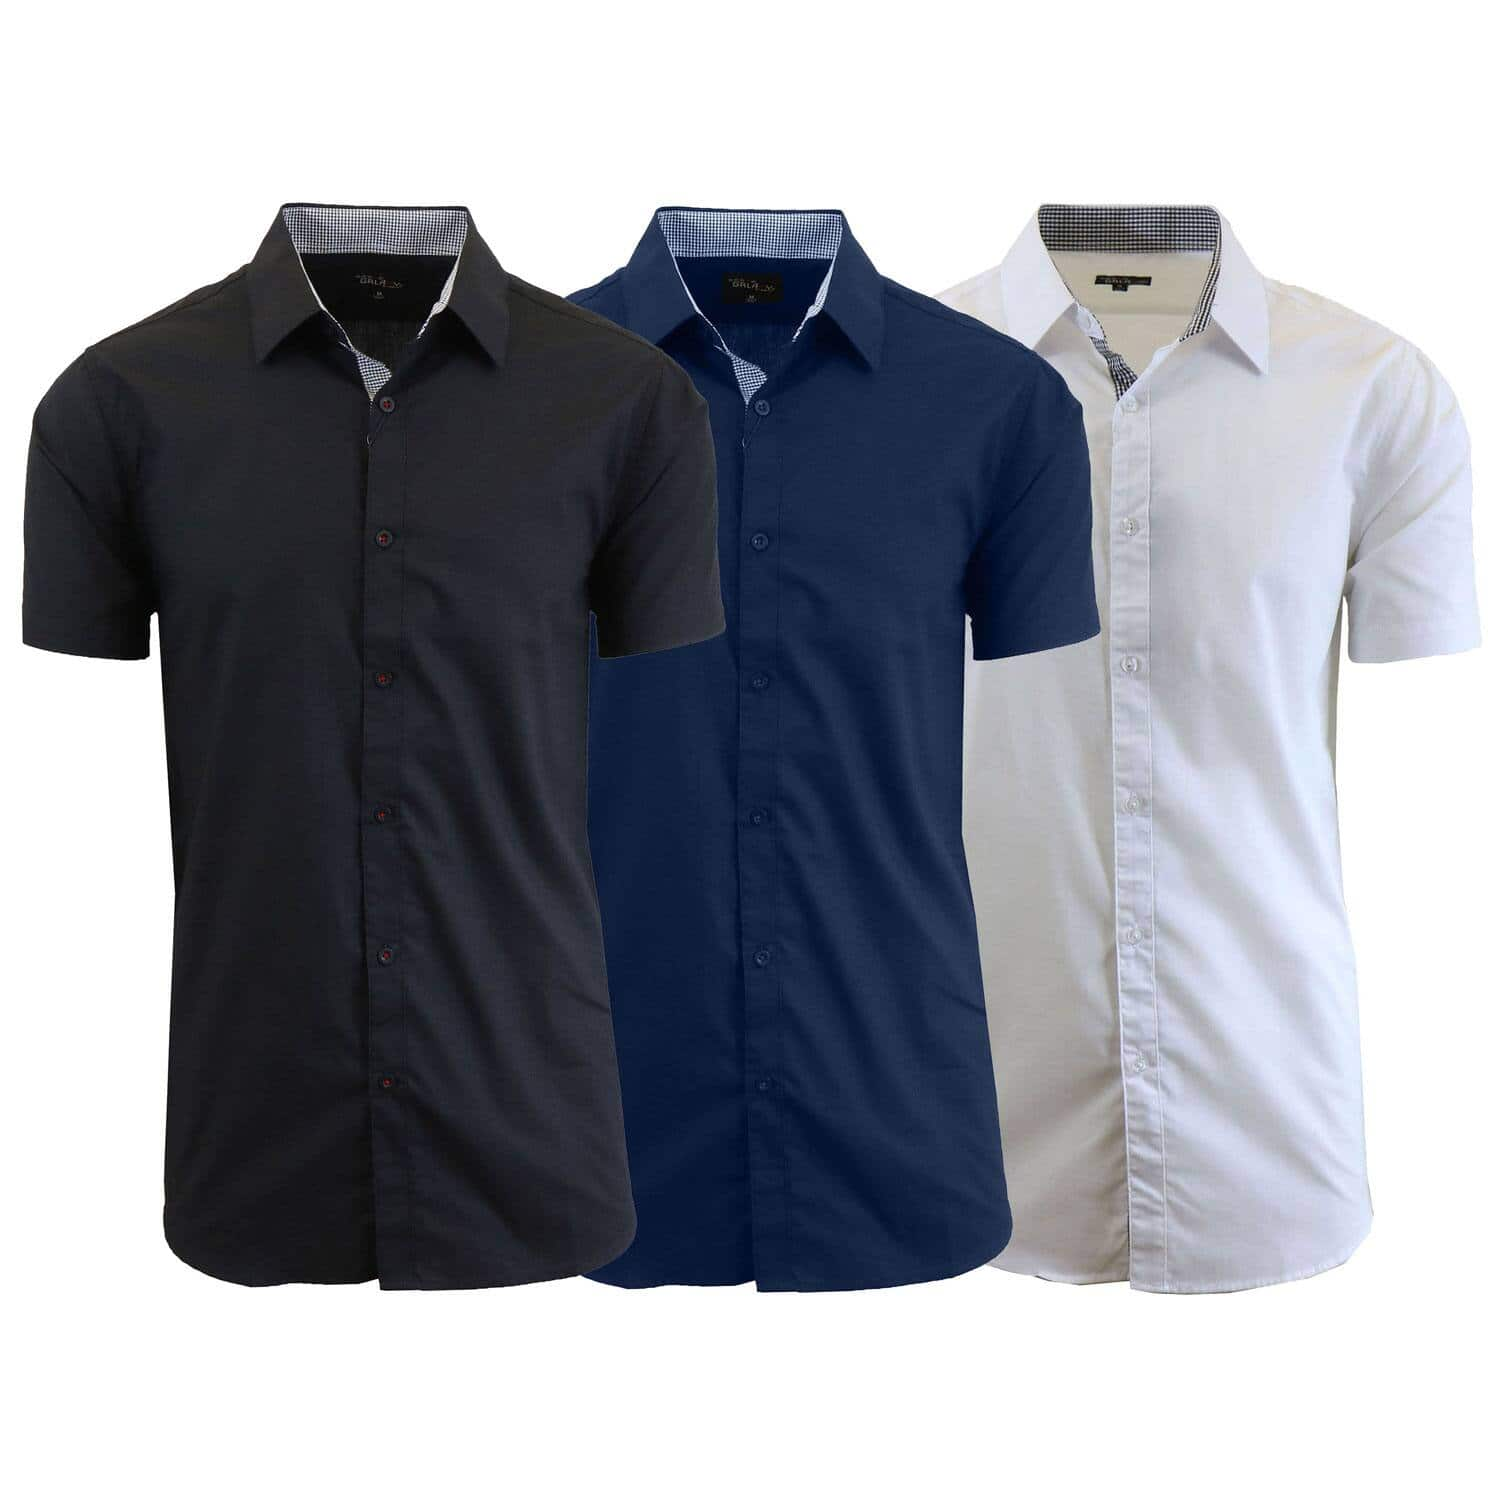 Men's Slim Fit Short Sleeve Dress Shirts (3 pack) - $23.99 + Free Shipping